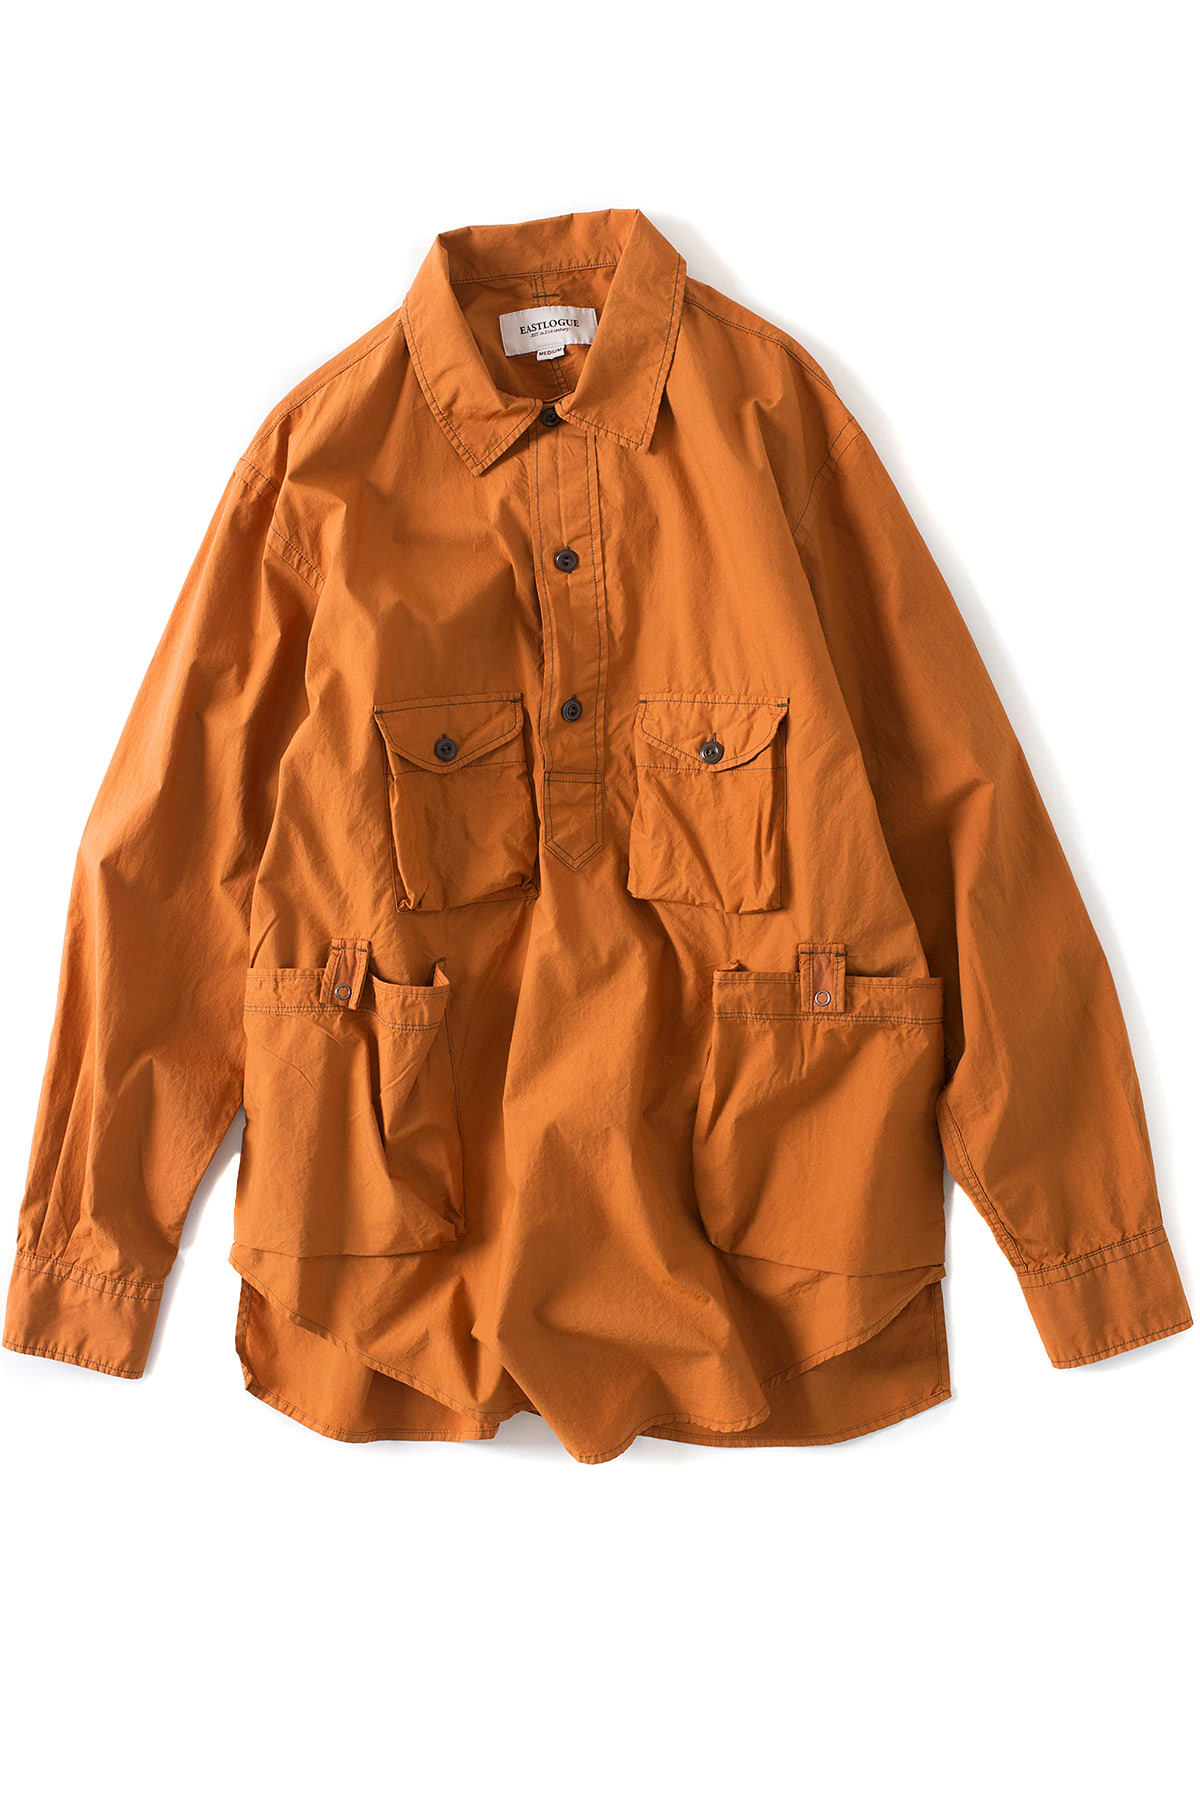 Eastlogue : Trekking Shirt (Ocher)